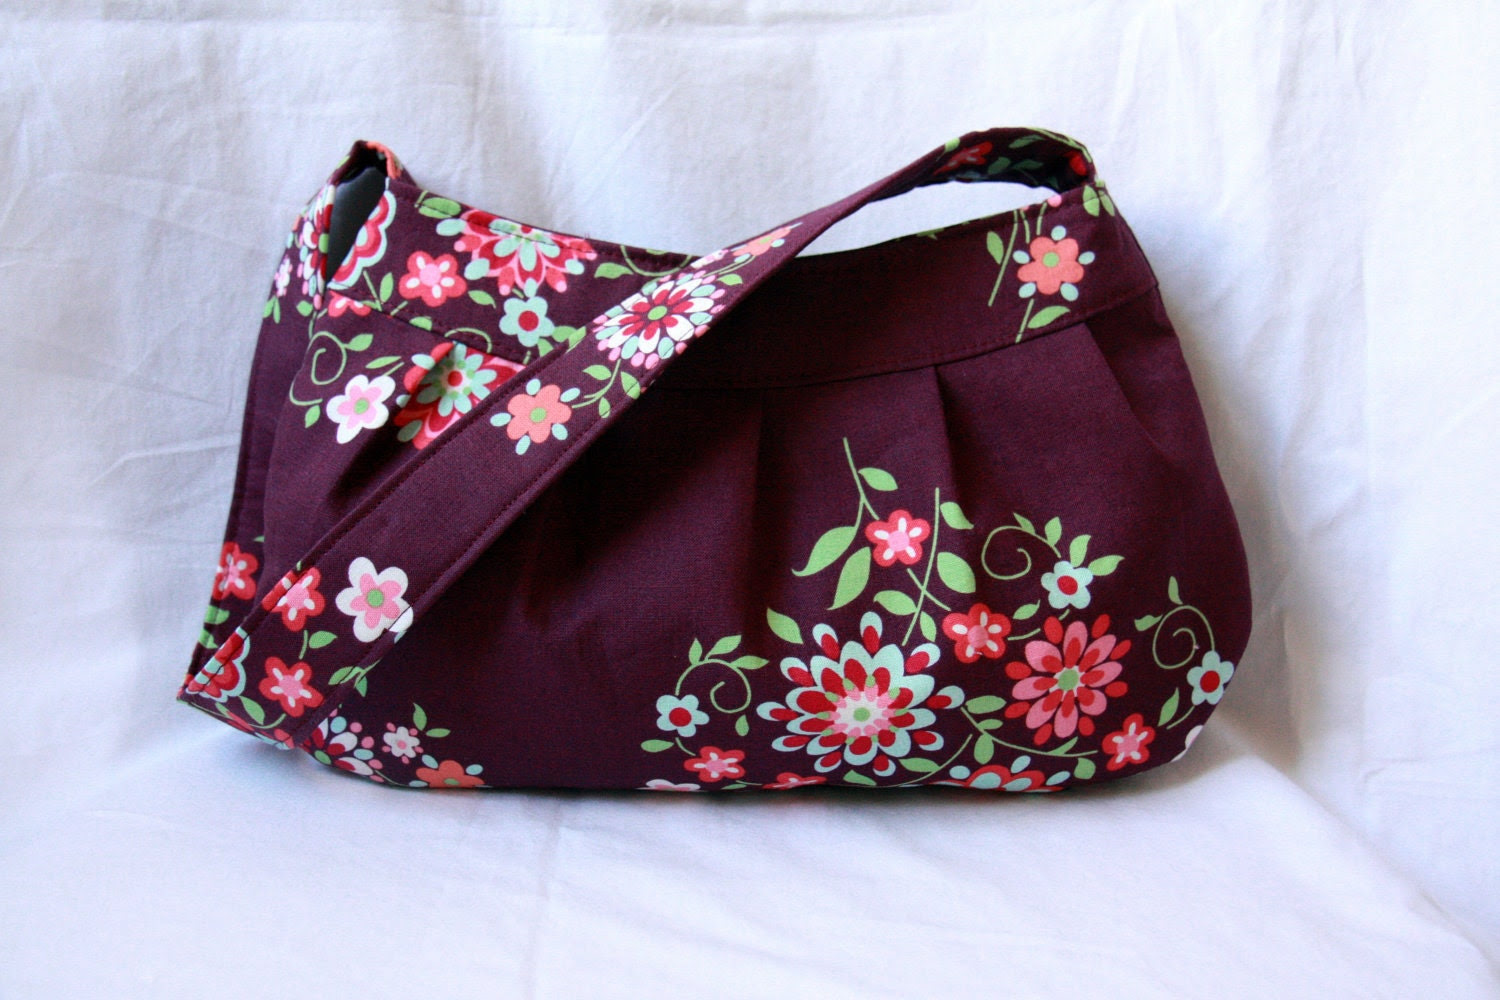 Buttercup Bag with Adjustable Strap - Amy Butler Memento Floral Purse with Polka Dot Lining